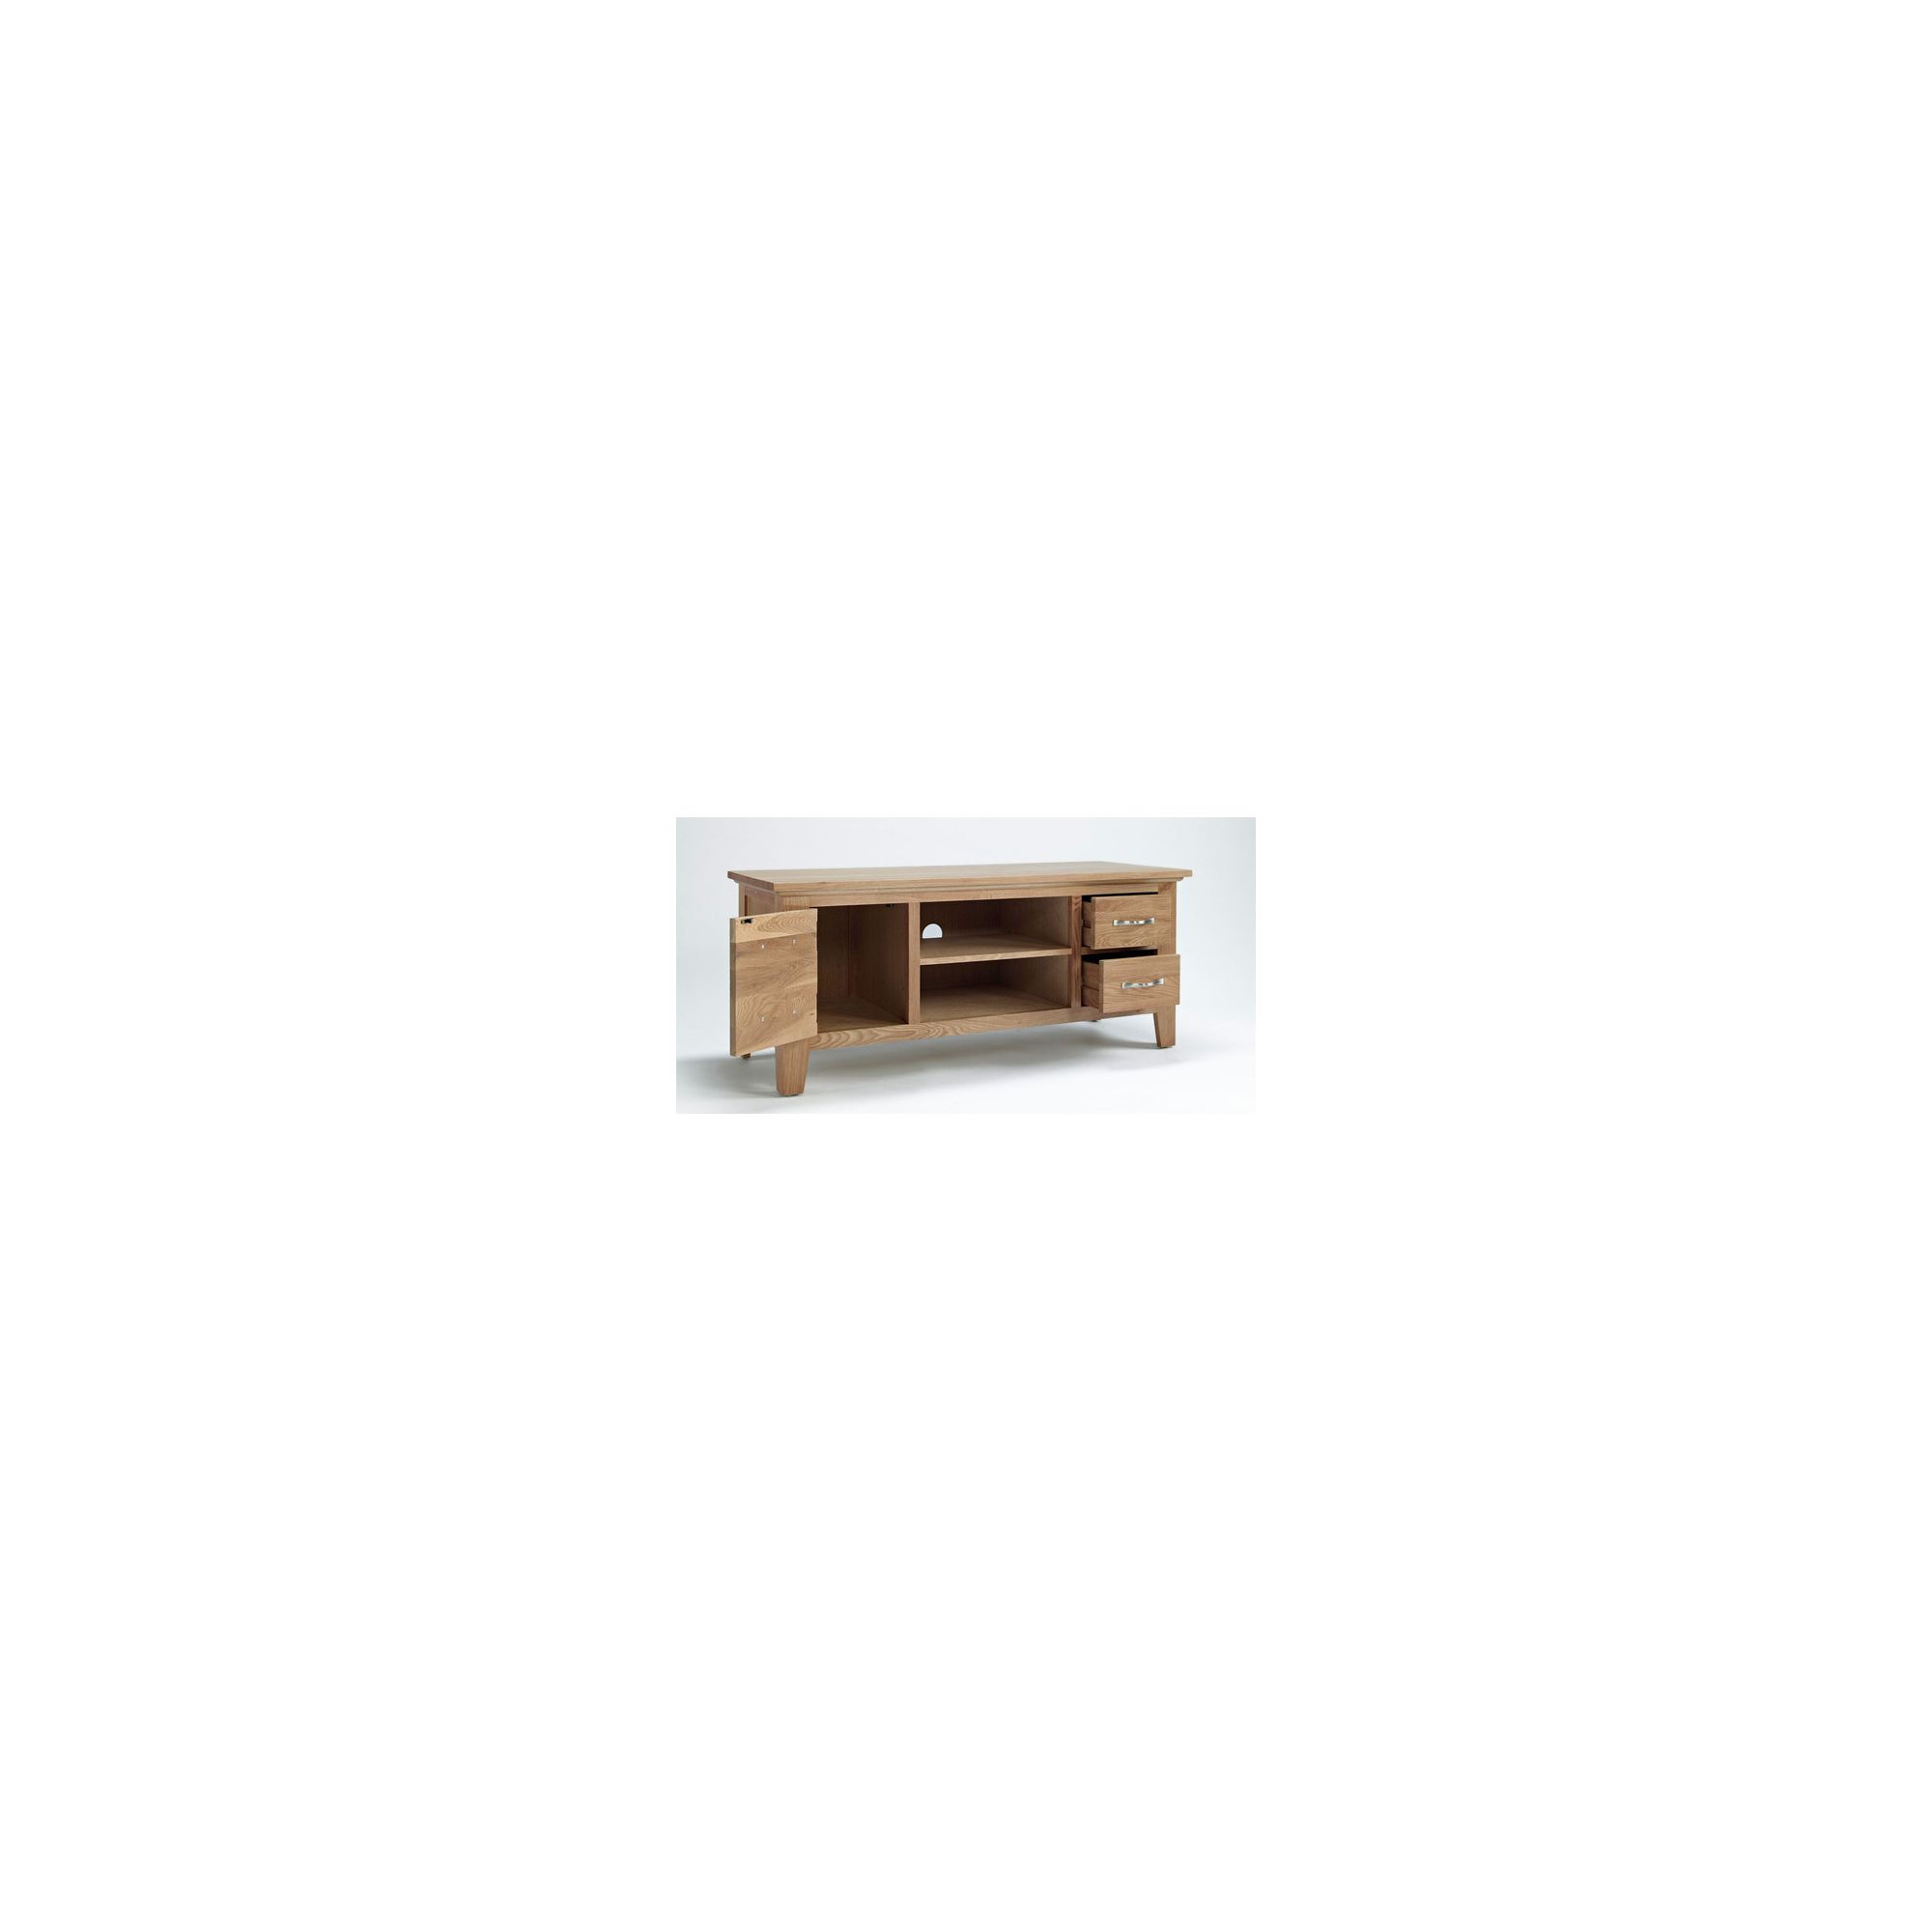 Ametis Cambridge Oak TV Unit - 120cm at Tesco Direct